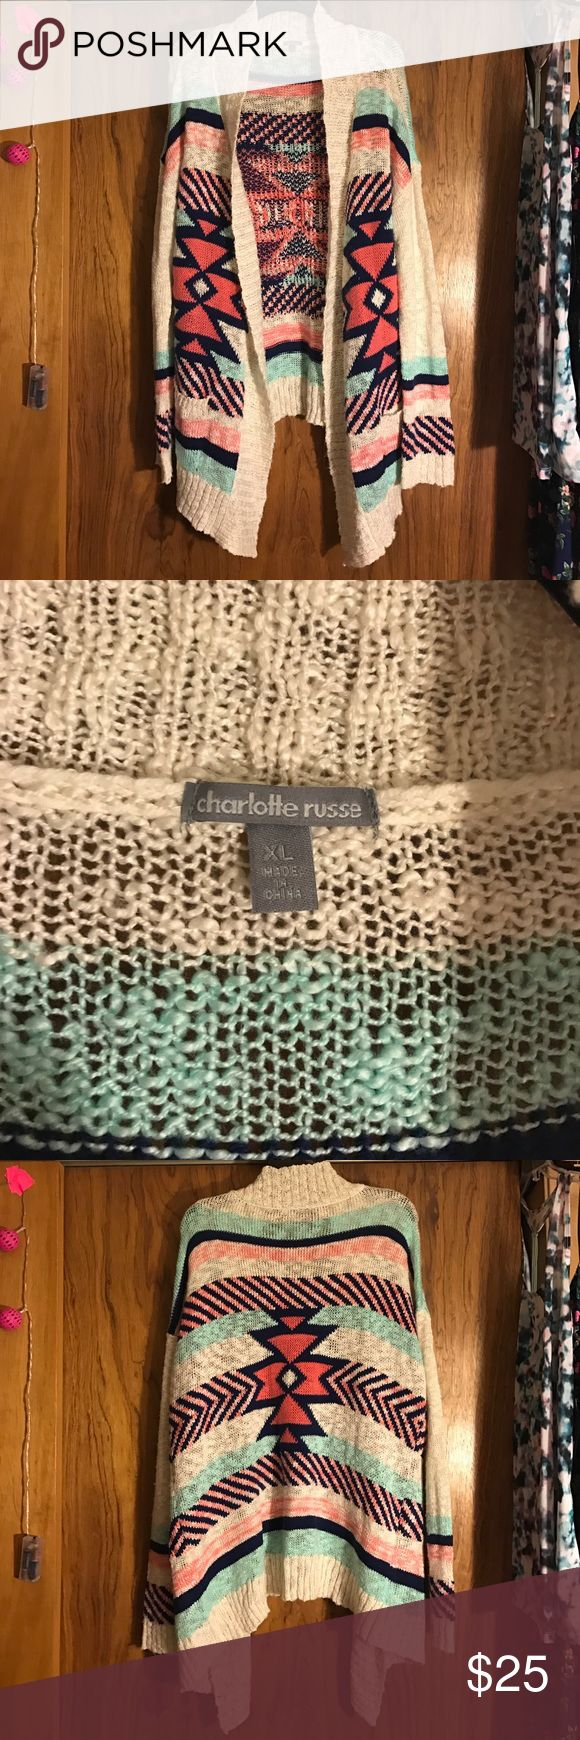 Charlotte Russe Aztec Sweater This is a super cute sweater from charlotte russe! It has been worn a couple times, but it is well taken care of and looks brand new! No snags or holes or tears. It is a size XL. Charlotte Russe Sweaters Cardigans